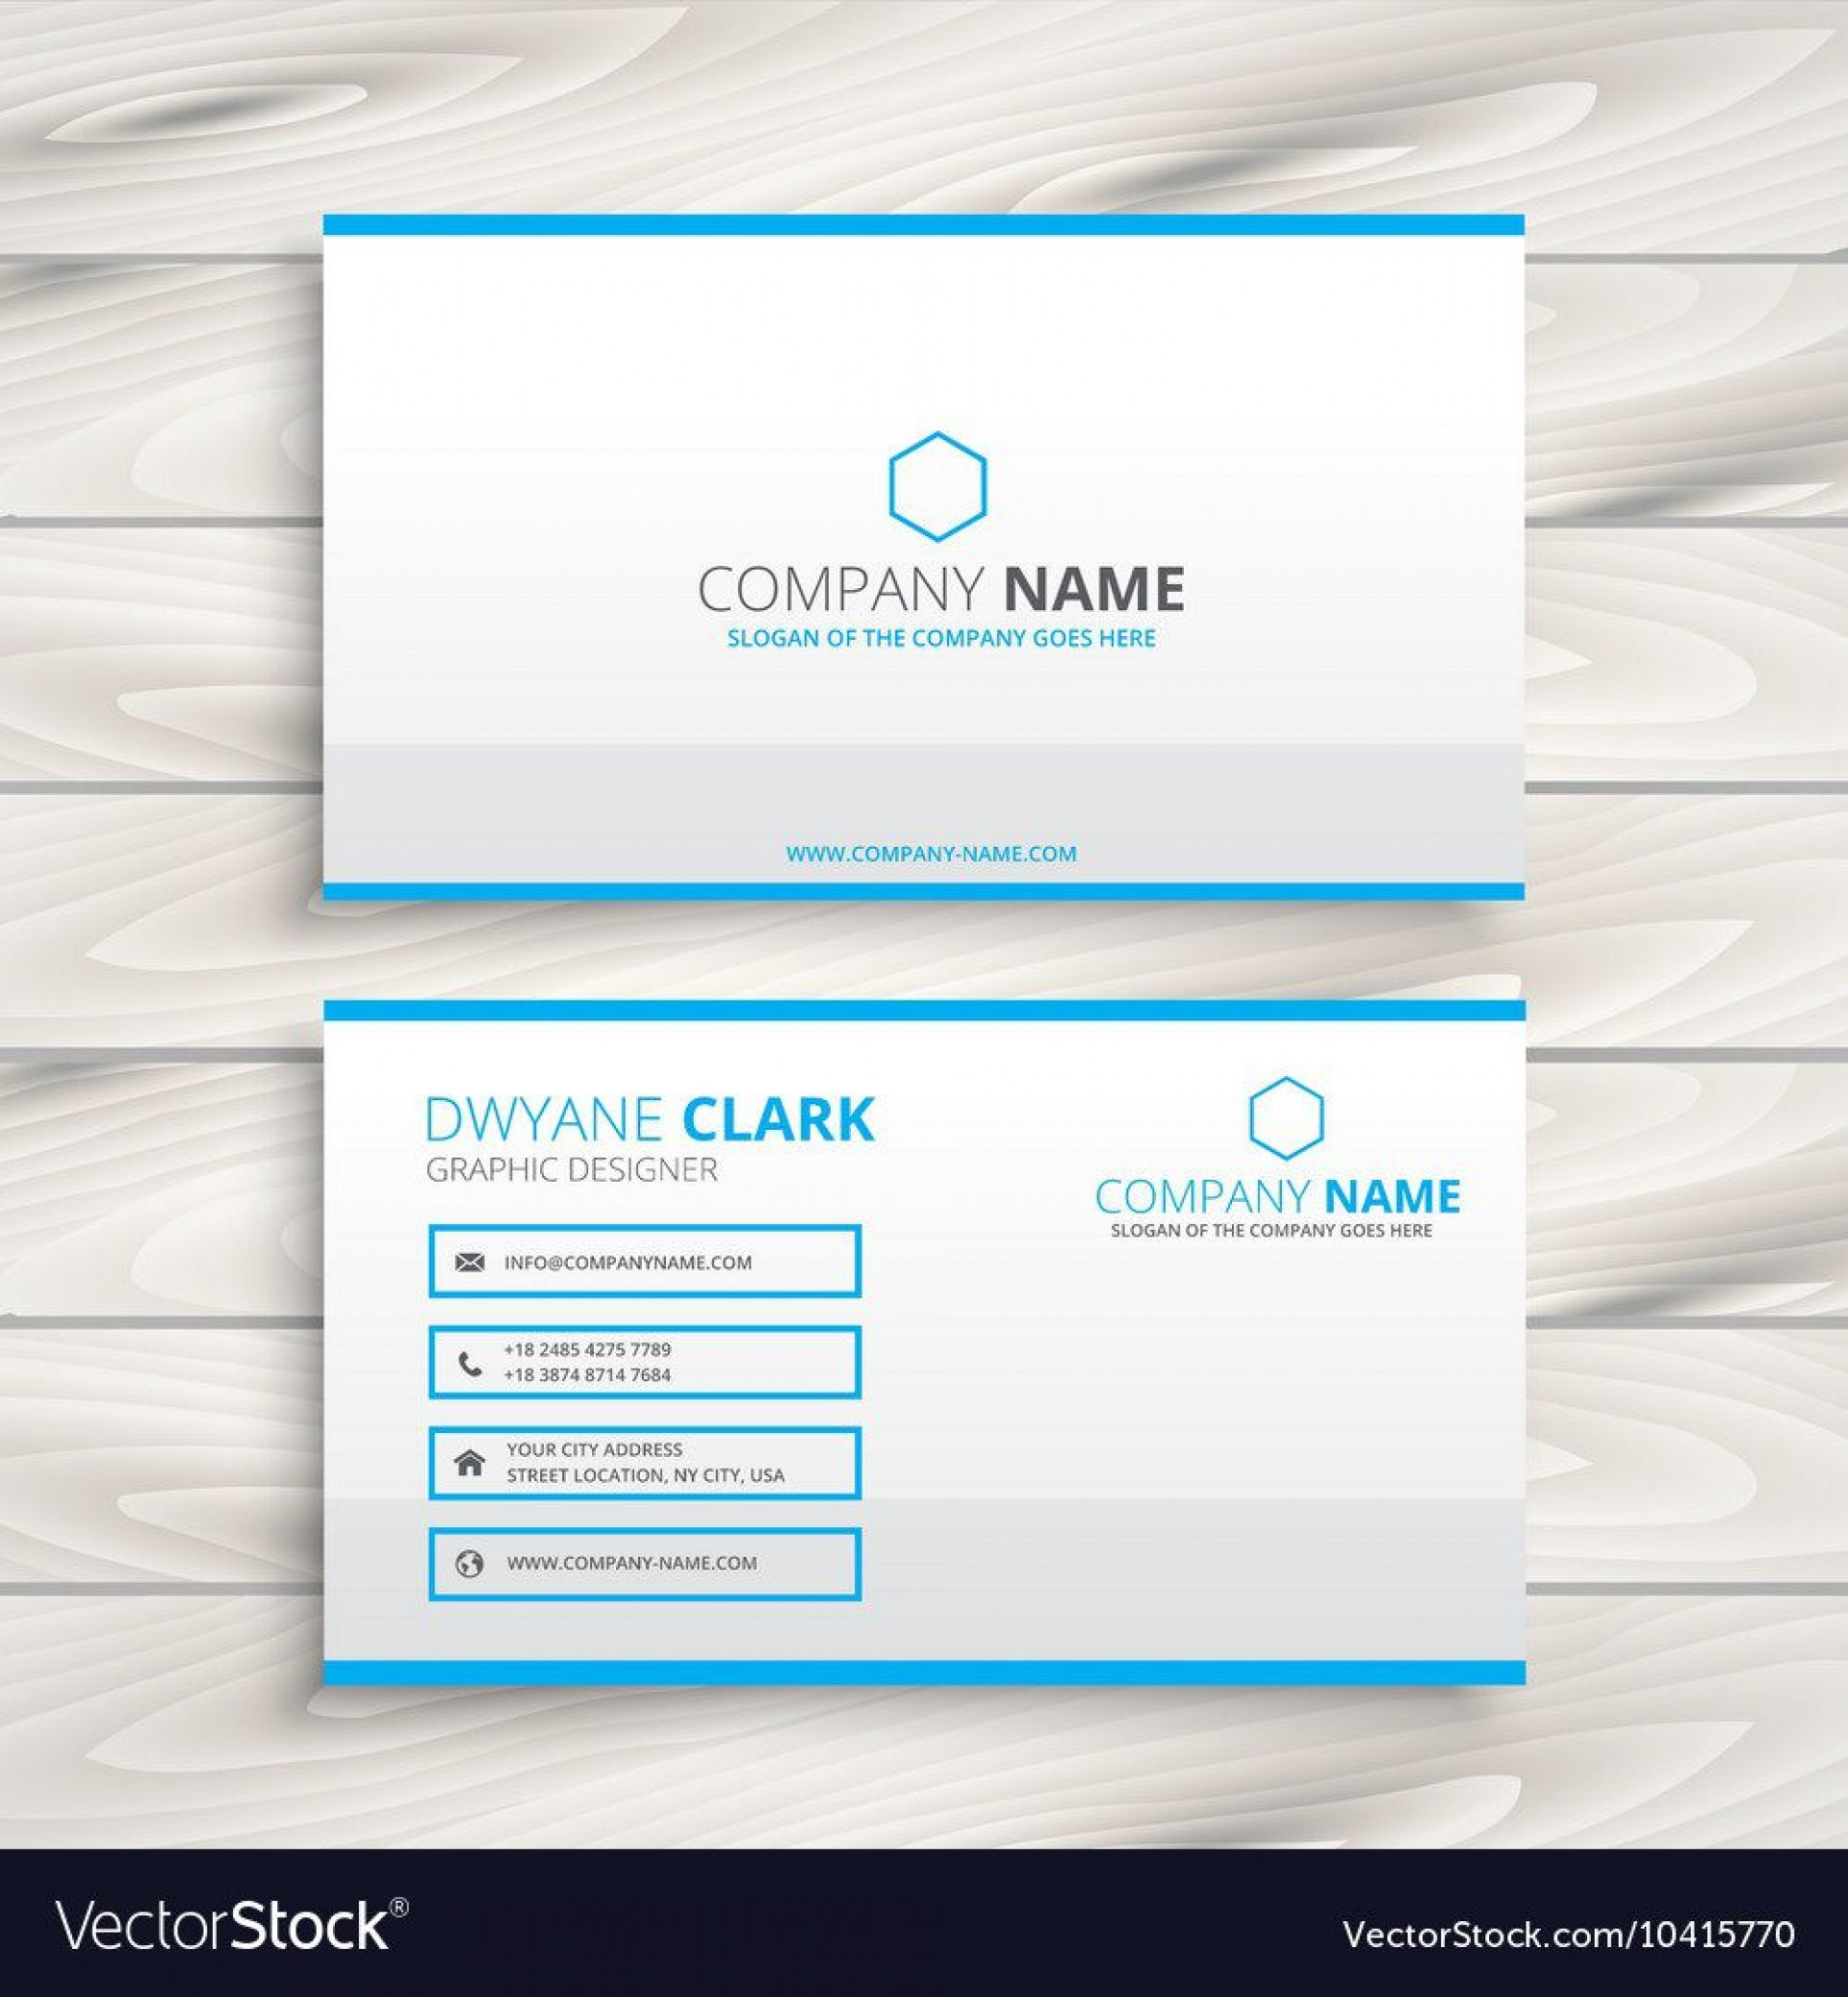 010 Dreaded Simple Busines Card Template Free Example  Visiting Design Psd File Download Minimalist Basic1920